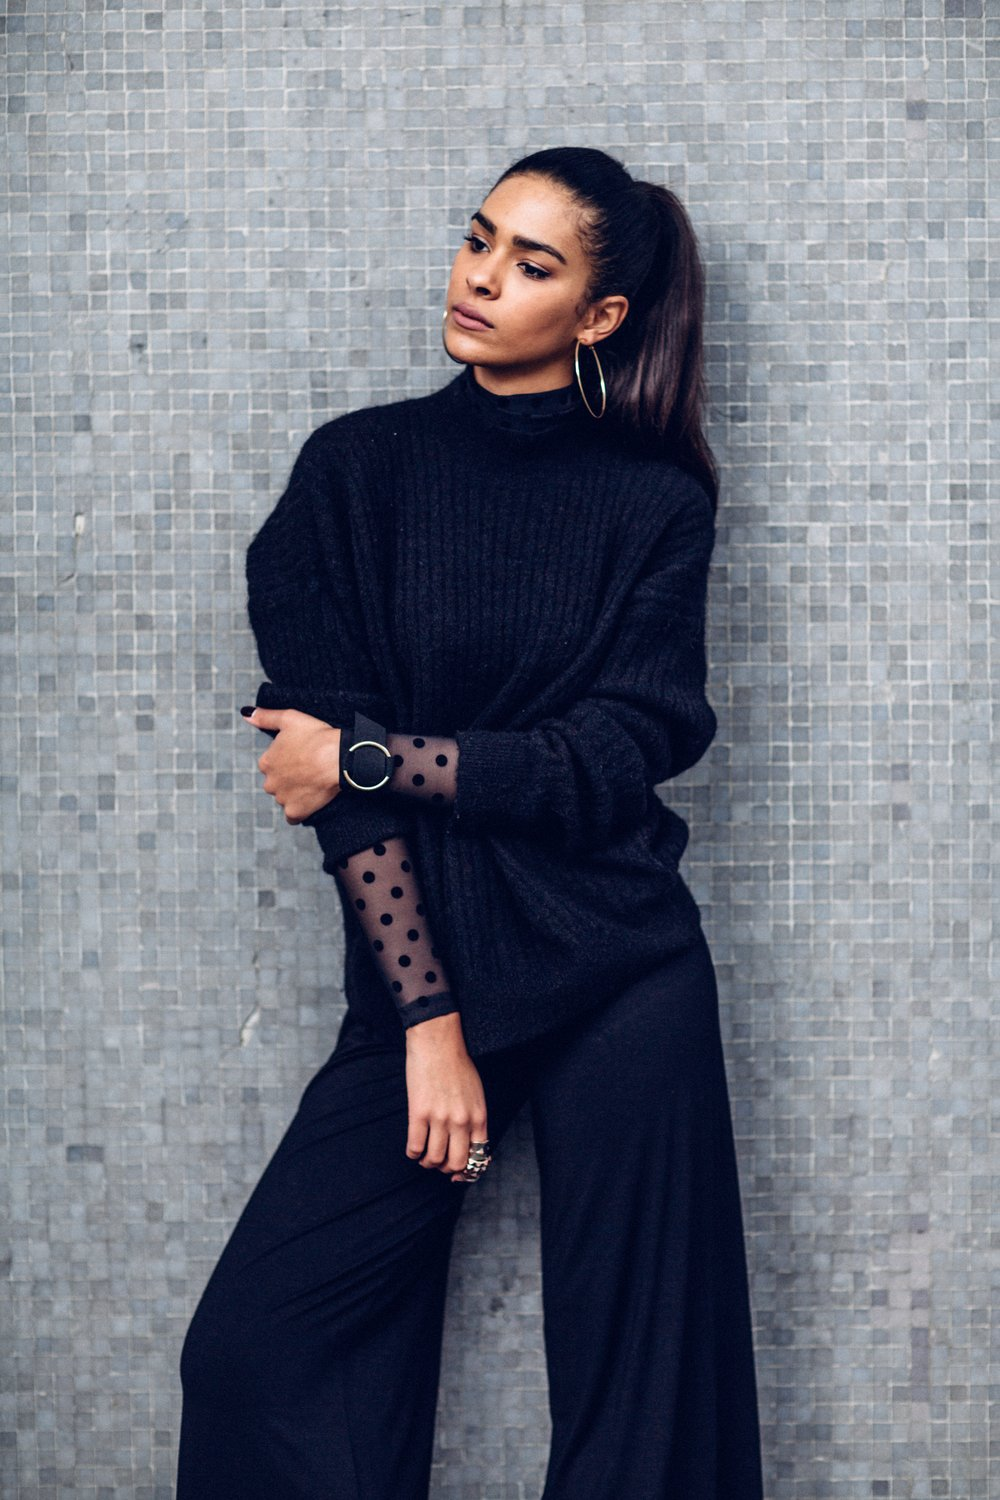 Carelle - All Black Outfit